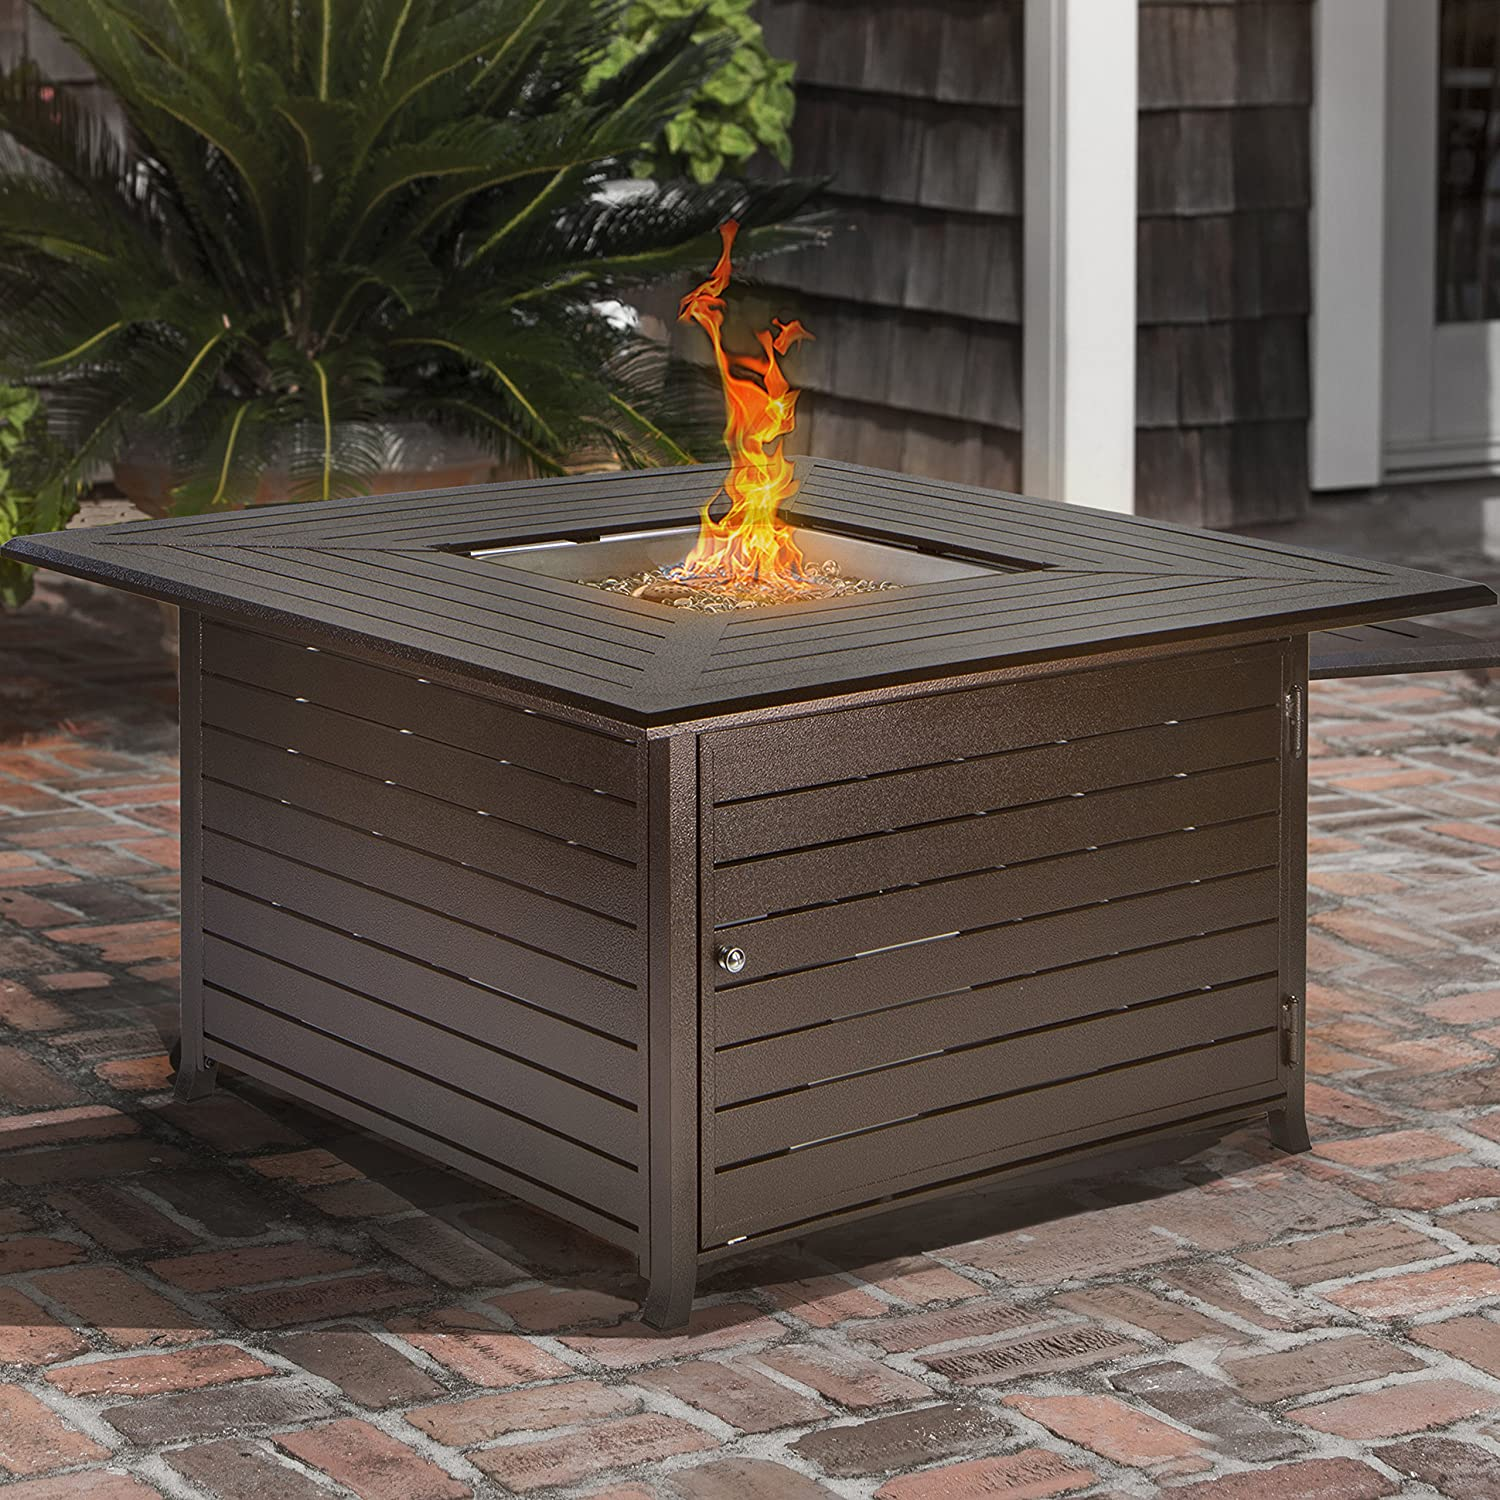 A1jsBOBTm7L. SL1500  Top Result 50 Awesome Gas Fire Pit Cover